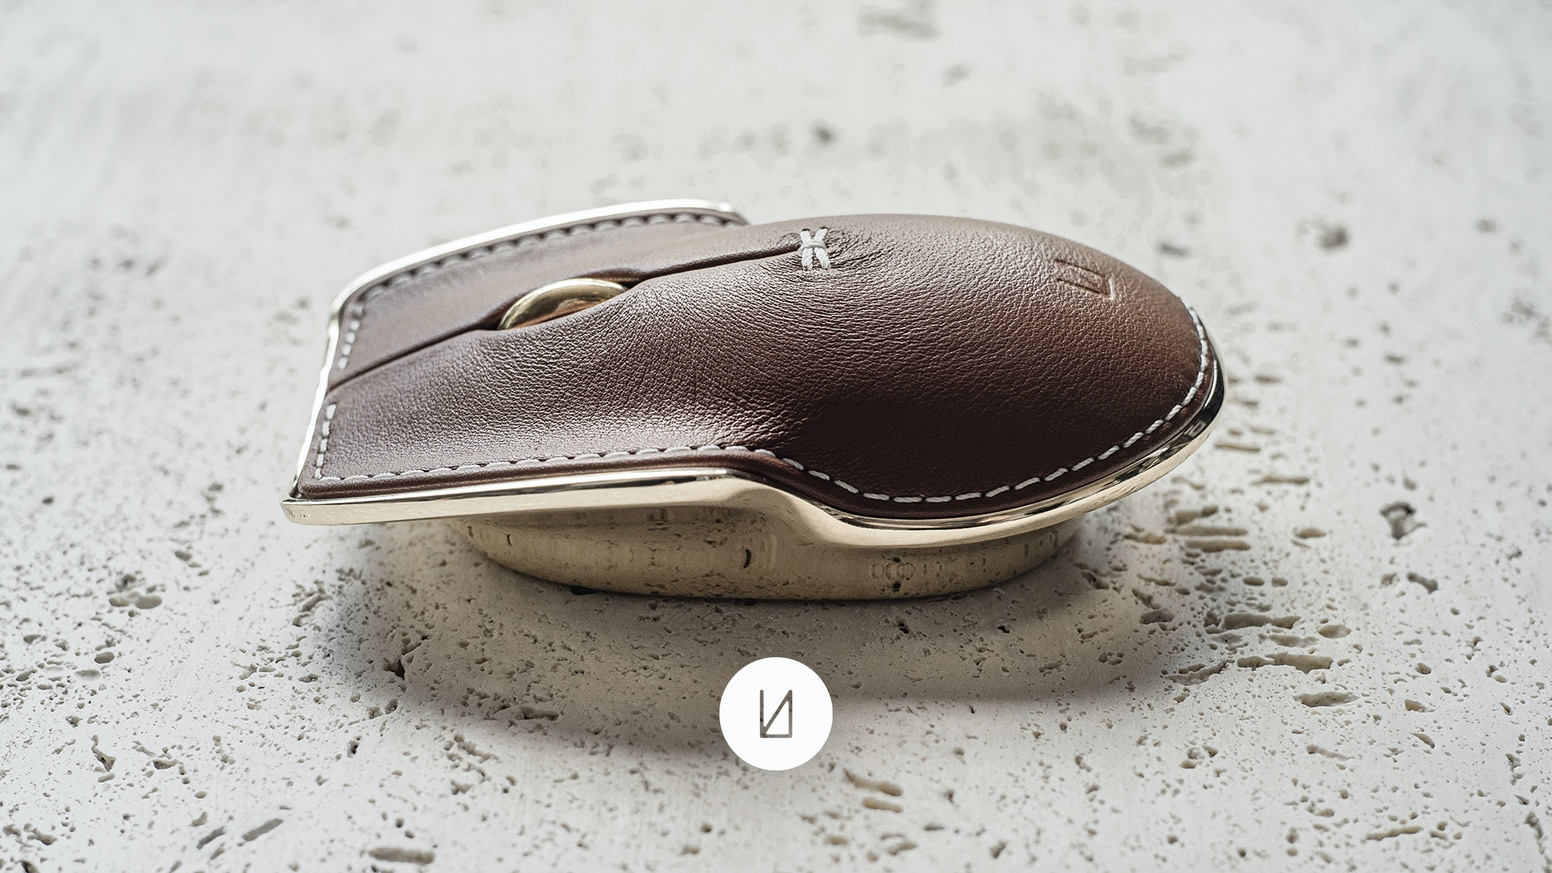 The Pointer Instrument by Lunar Artefacts is a metal and leather mouse tailored for your life's adventure.